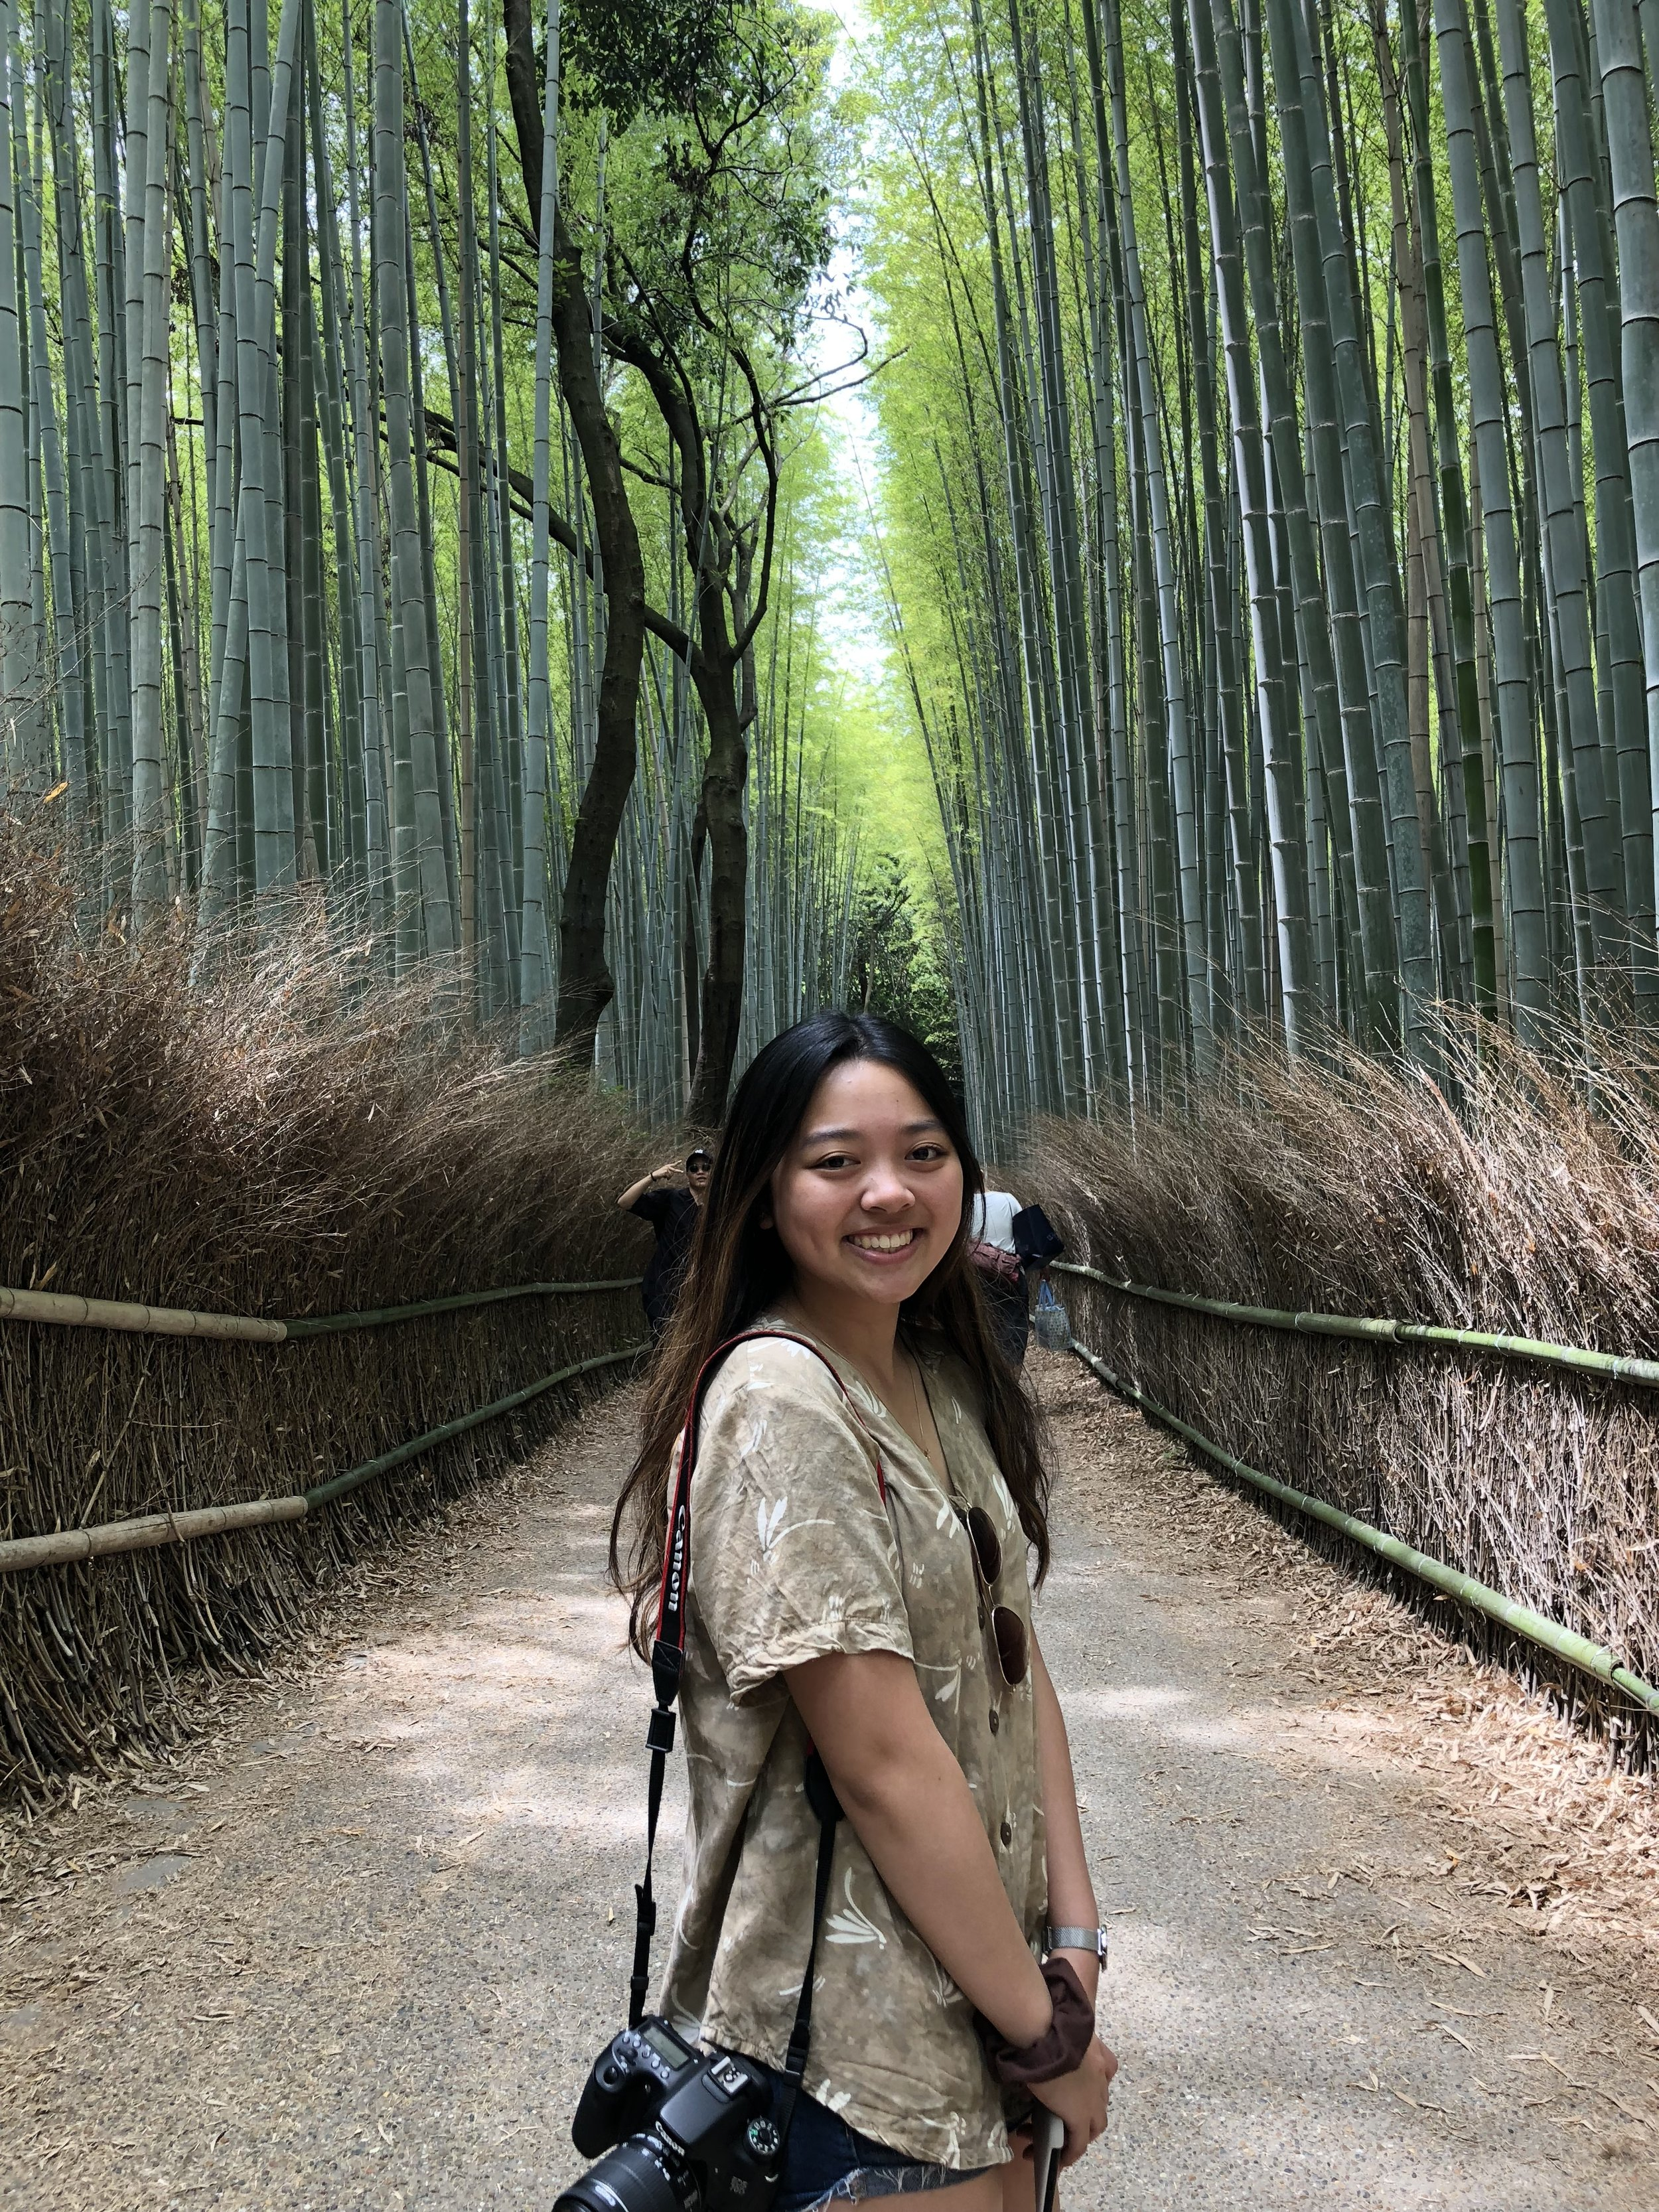 Angie Lao '20,  Chair  Angie is a junior from San Jose, CA. She is involved with Club Volleyball, Chinese Students Association, and Women in Business. She also loves traveling (she visited Japan and Korea with fellow PHSF member Luanna!), eating food, polka dots and staying active outdoors. Her favorite place on campus is Gilman Quad.